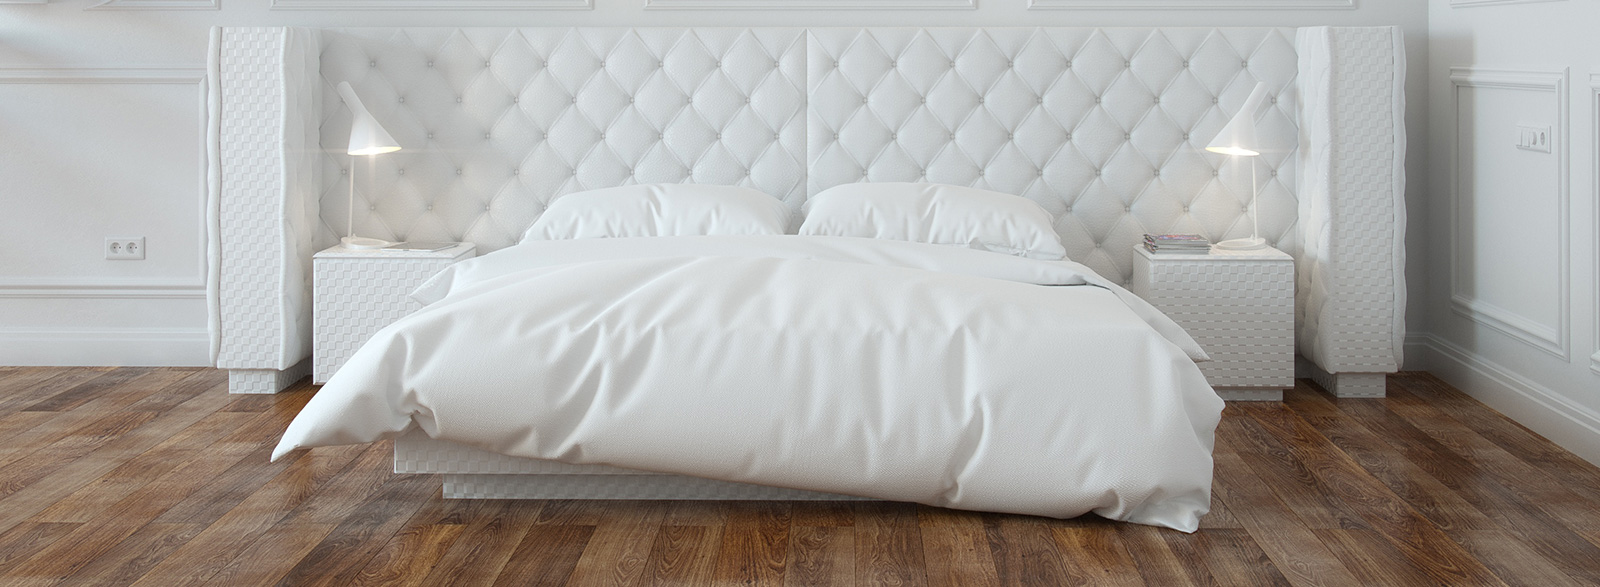 Best Mattress Reviews And Buying Guide by www.snoremagazine.com